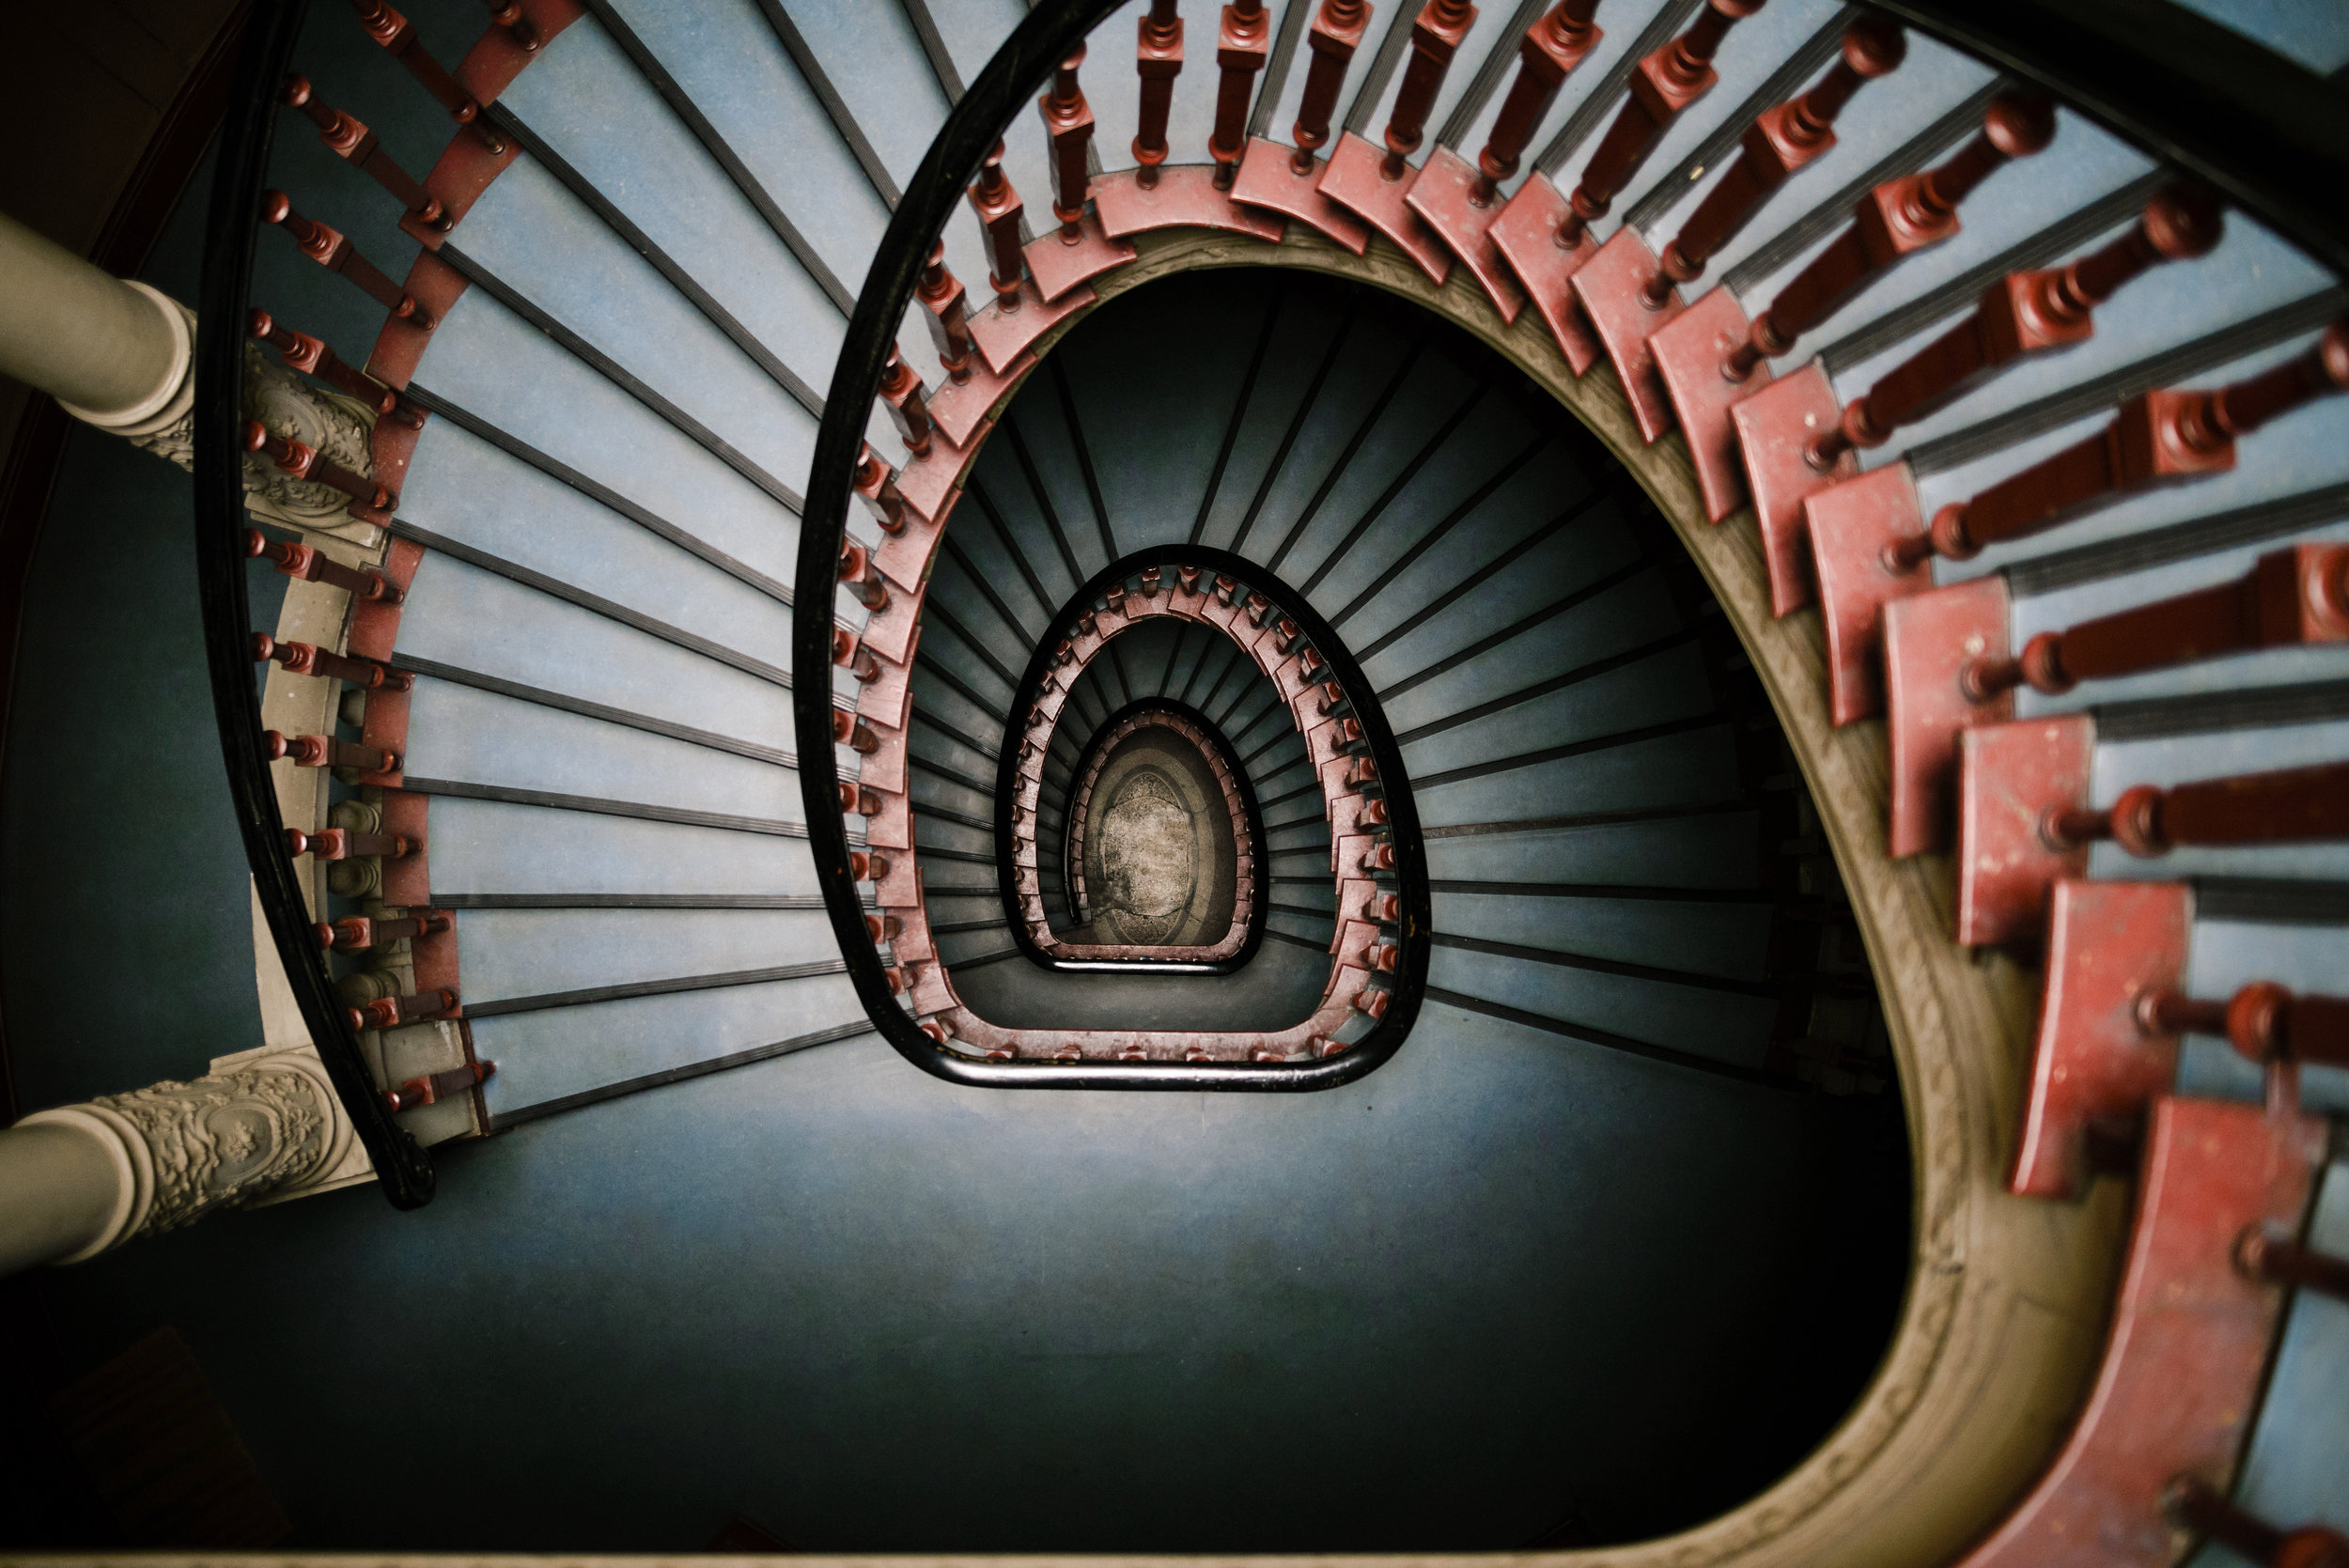 one of the most beautiful staircases in berlin.